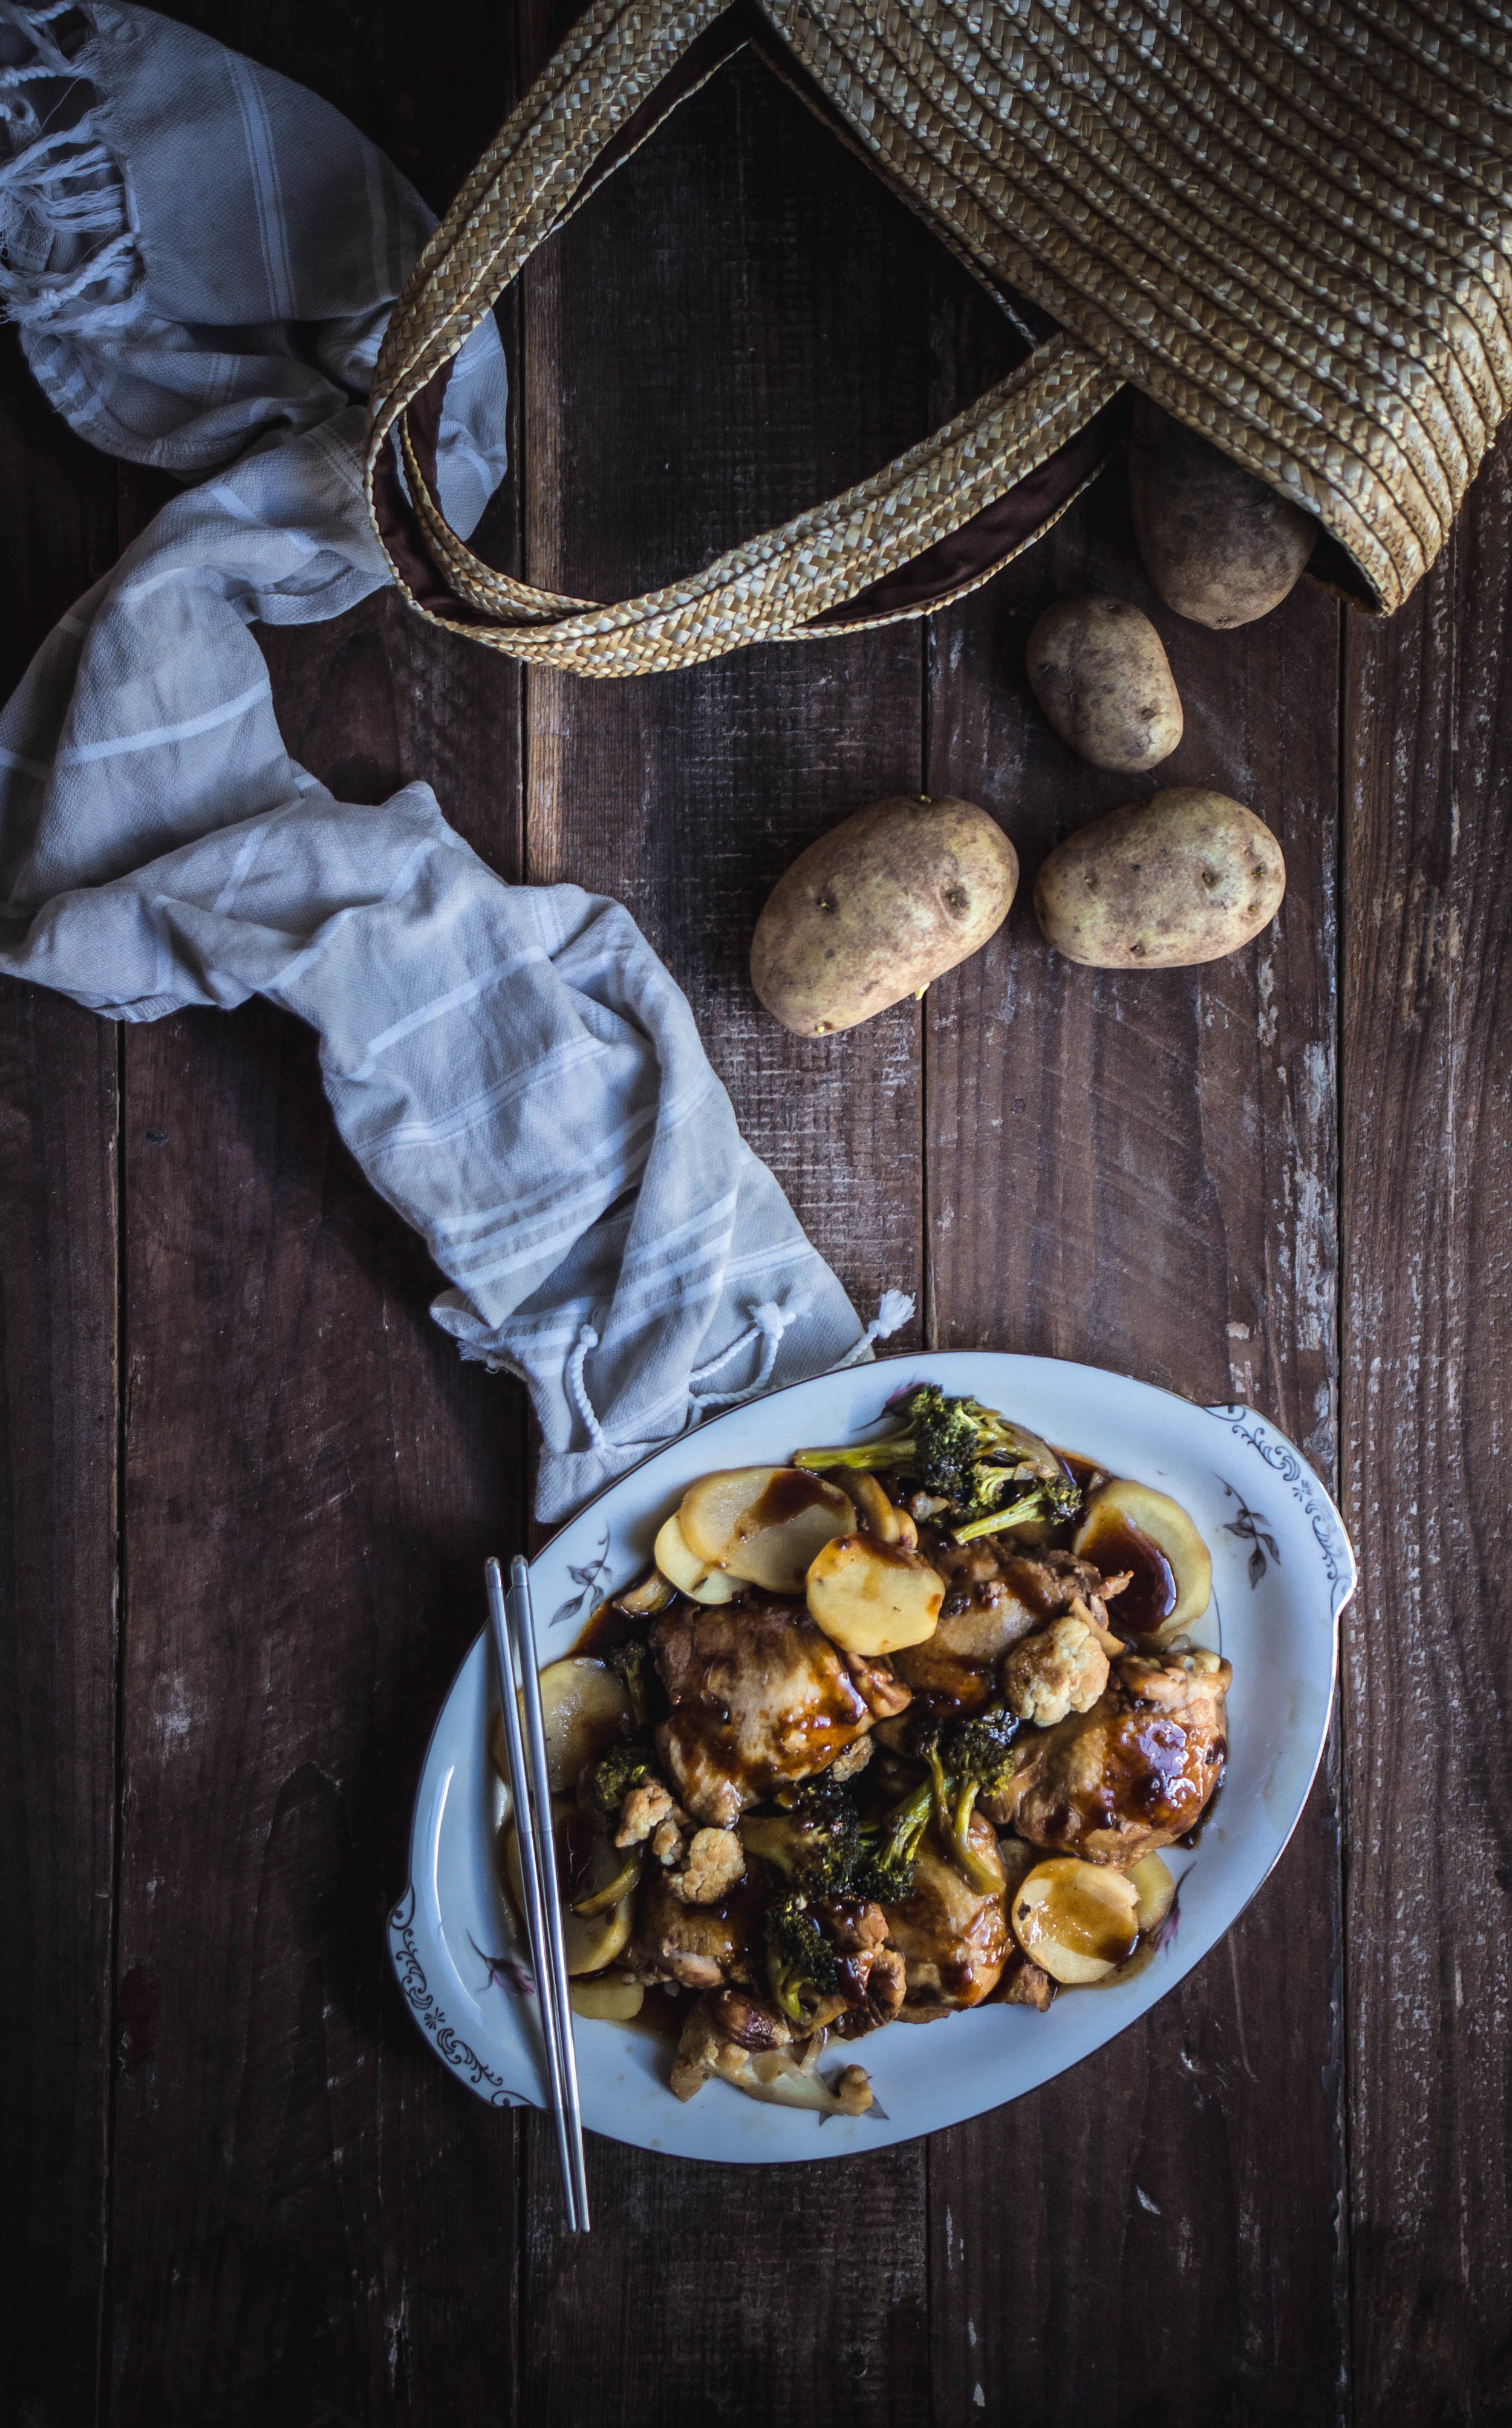 Caramel chicken and veggies recipe, adapted from Bon Appetit | from scratch, mostly